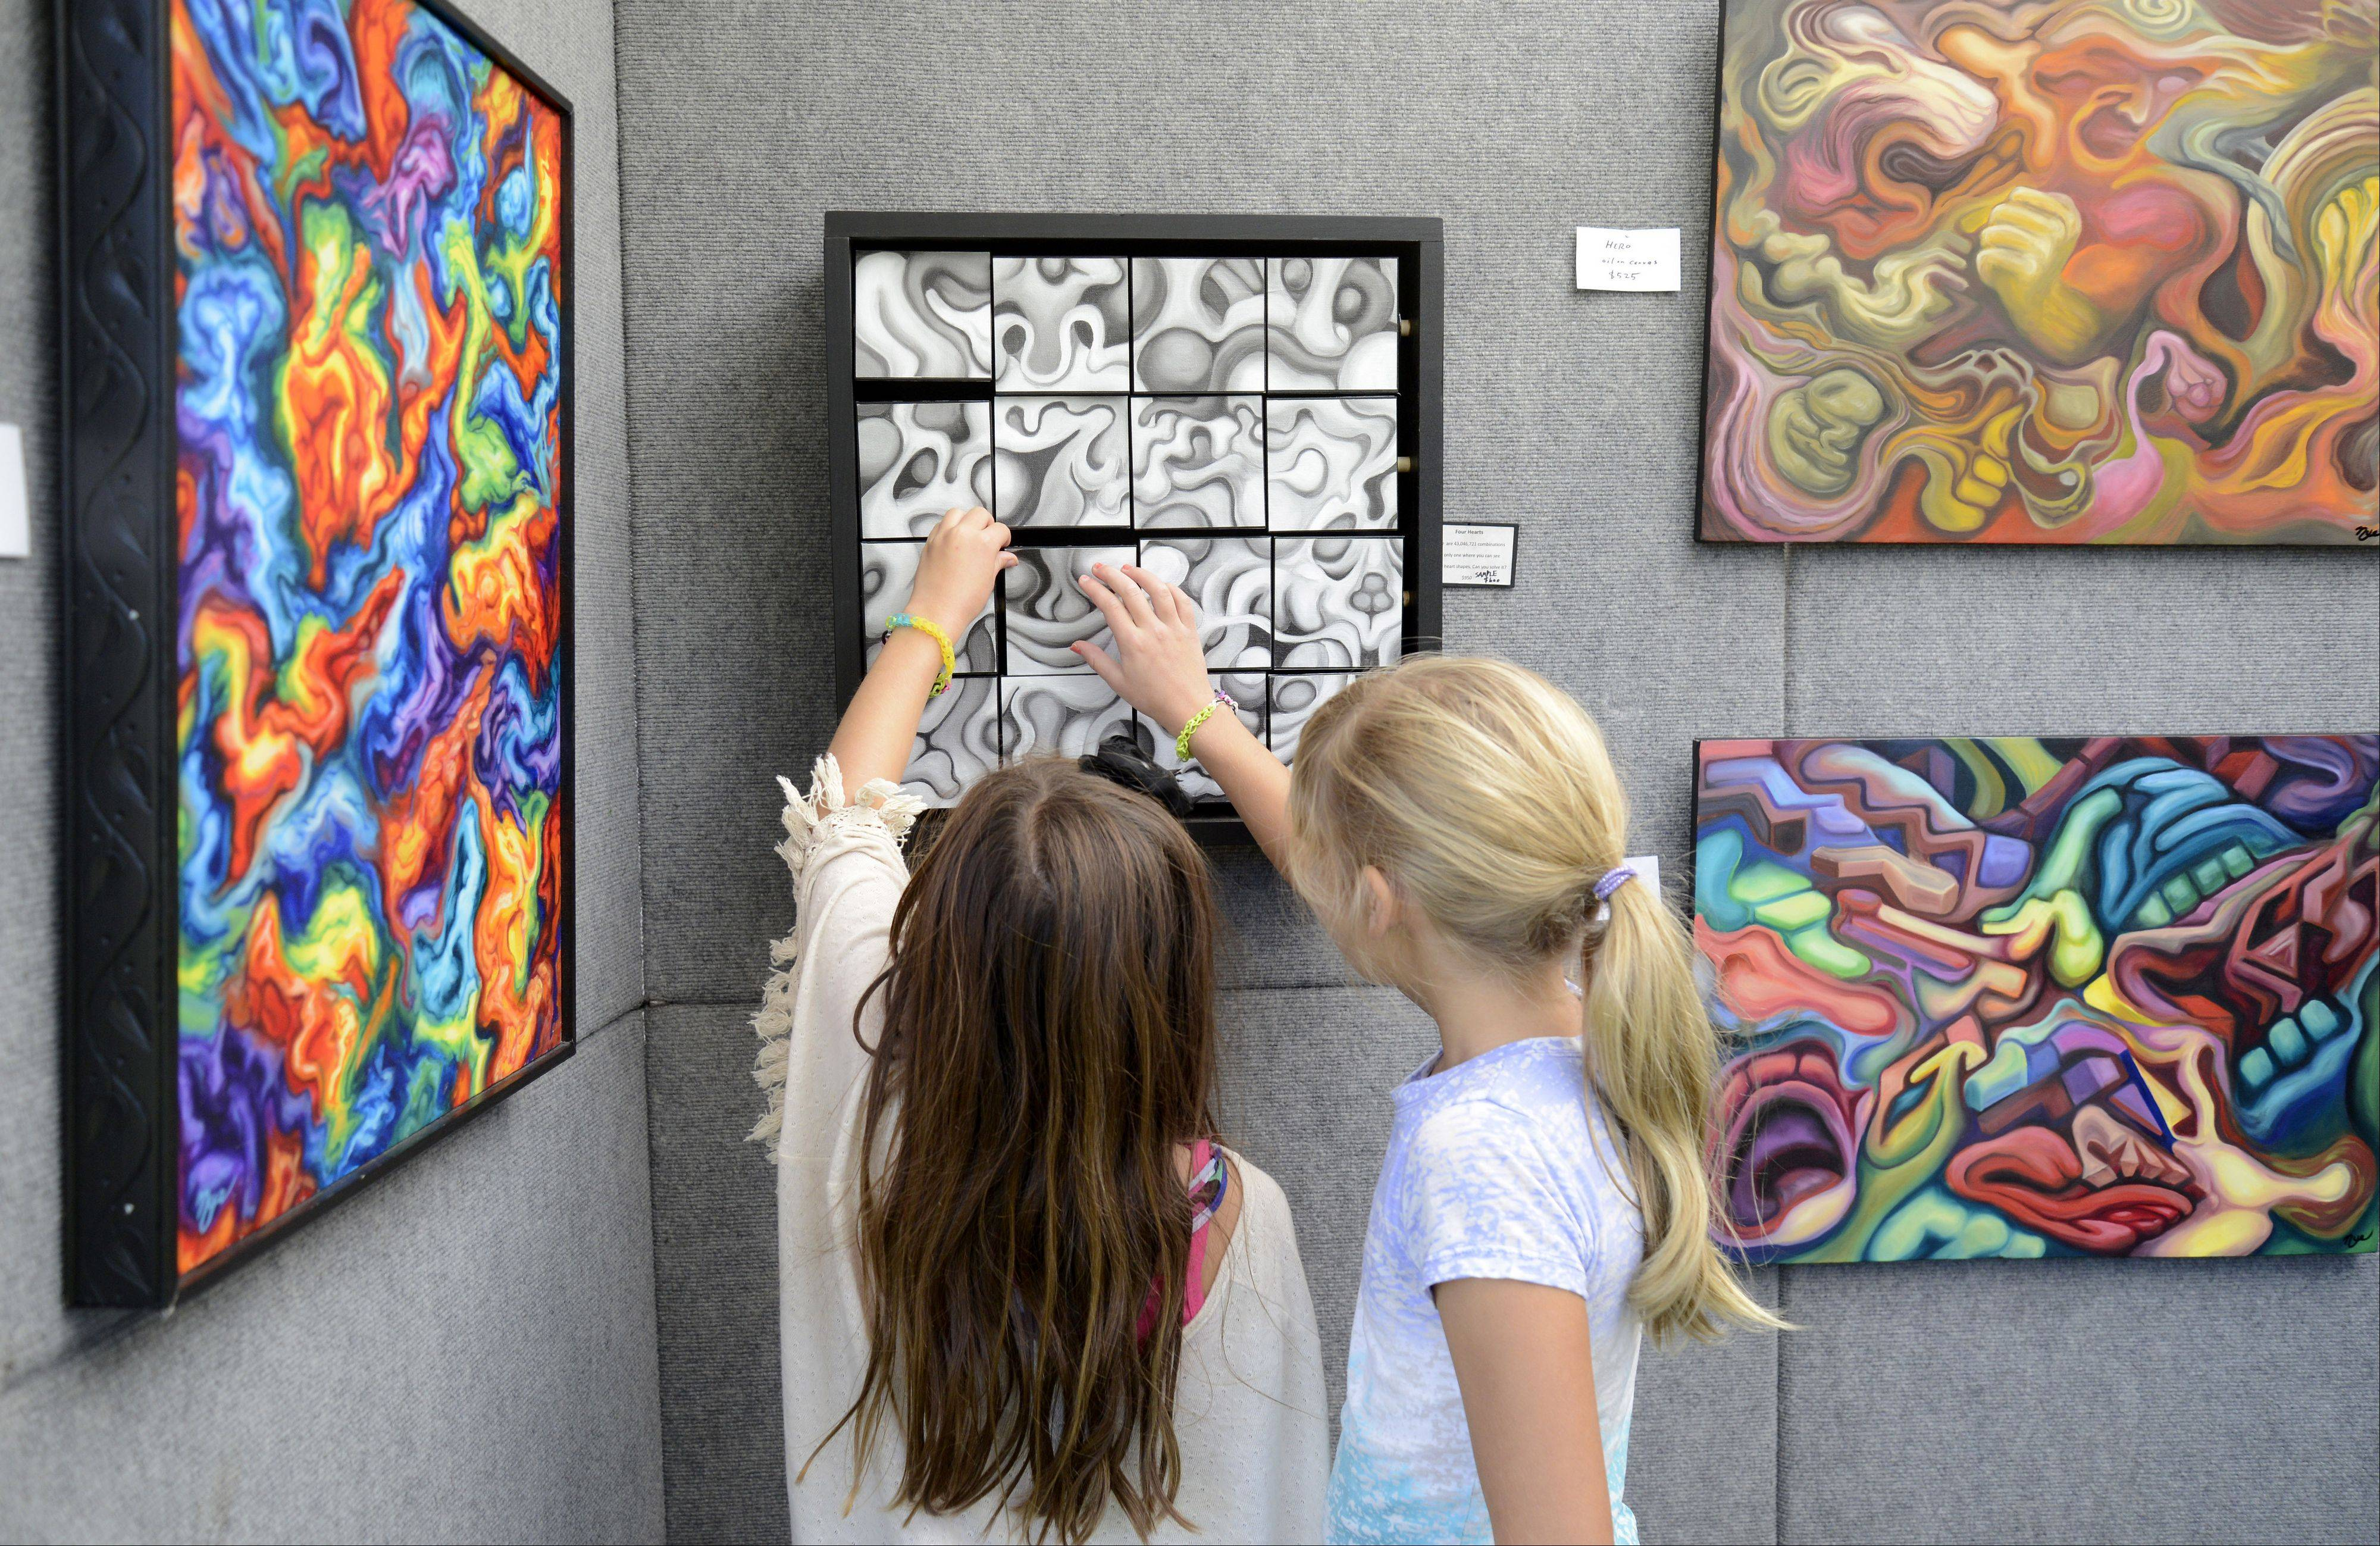 Hanna Christian, left, and Meredith Brown, both 8½and from Batavia, explore the interactive artwork of Eric Nye of Des Plaines at the Art in Your Eye festival Saturday in Batavia. Nye, who has been doing mixed media art for 15 years, uses images, paints and other media to create different scenes.